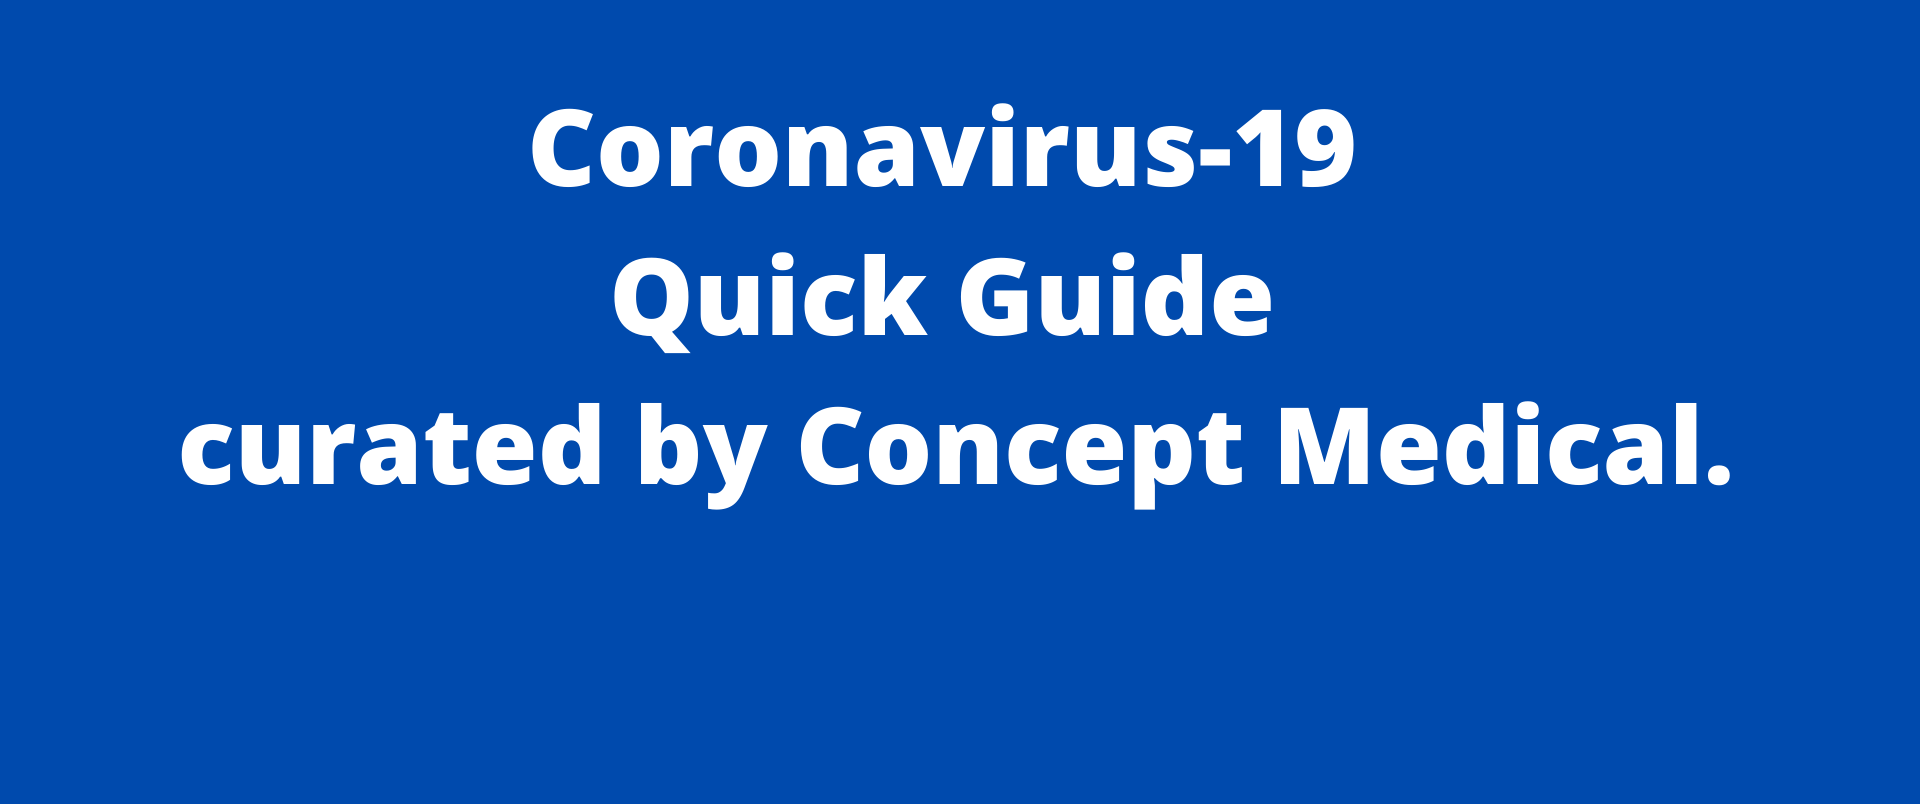 Coronavirus-19 Quick Guide curated by Concept Medical Inc.